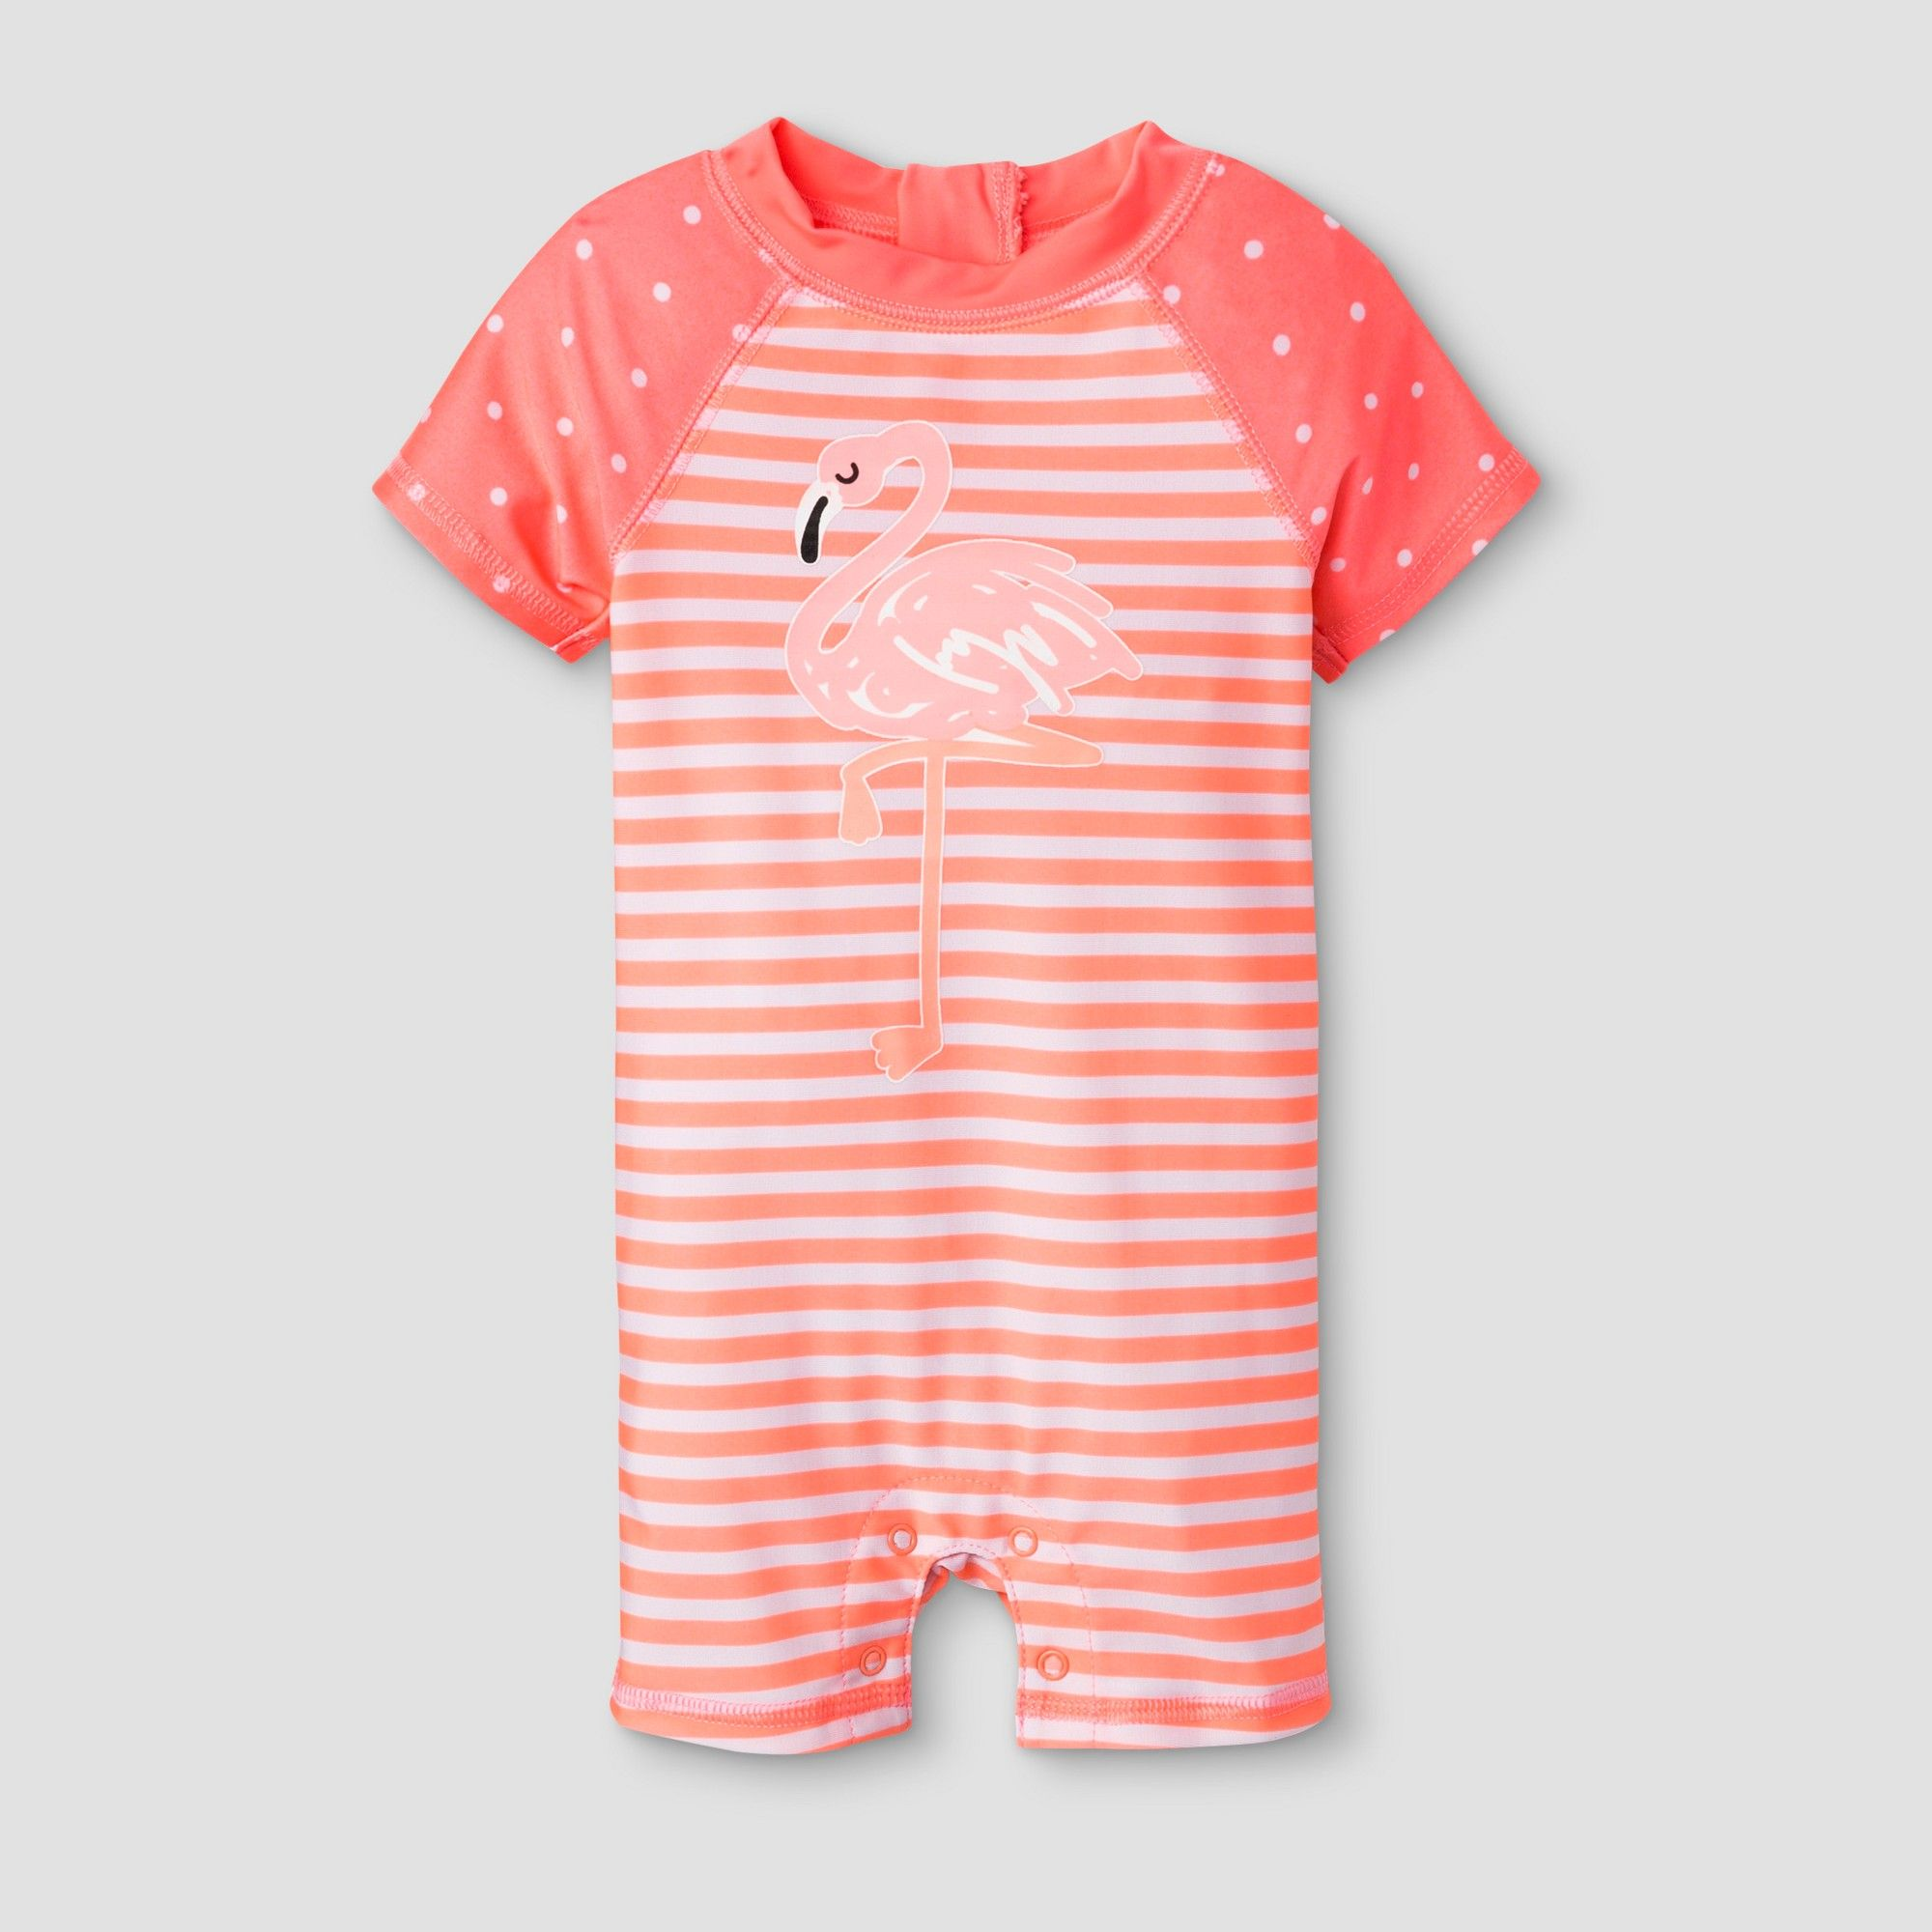 ff2d1ae665d Baby Girls' Short Sleeve Flamingo One Piece Swimsuit - Cat & Jack Coral  12-18M, Pink